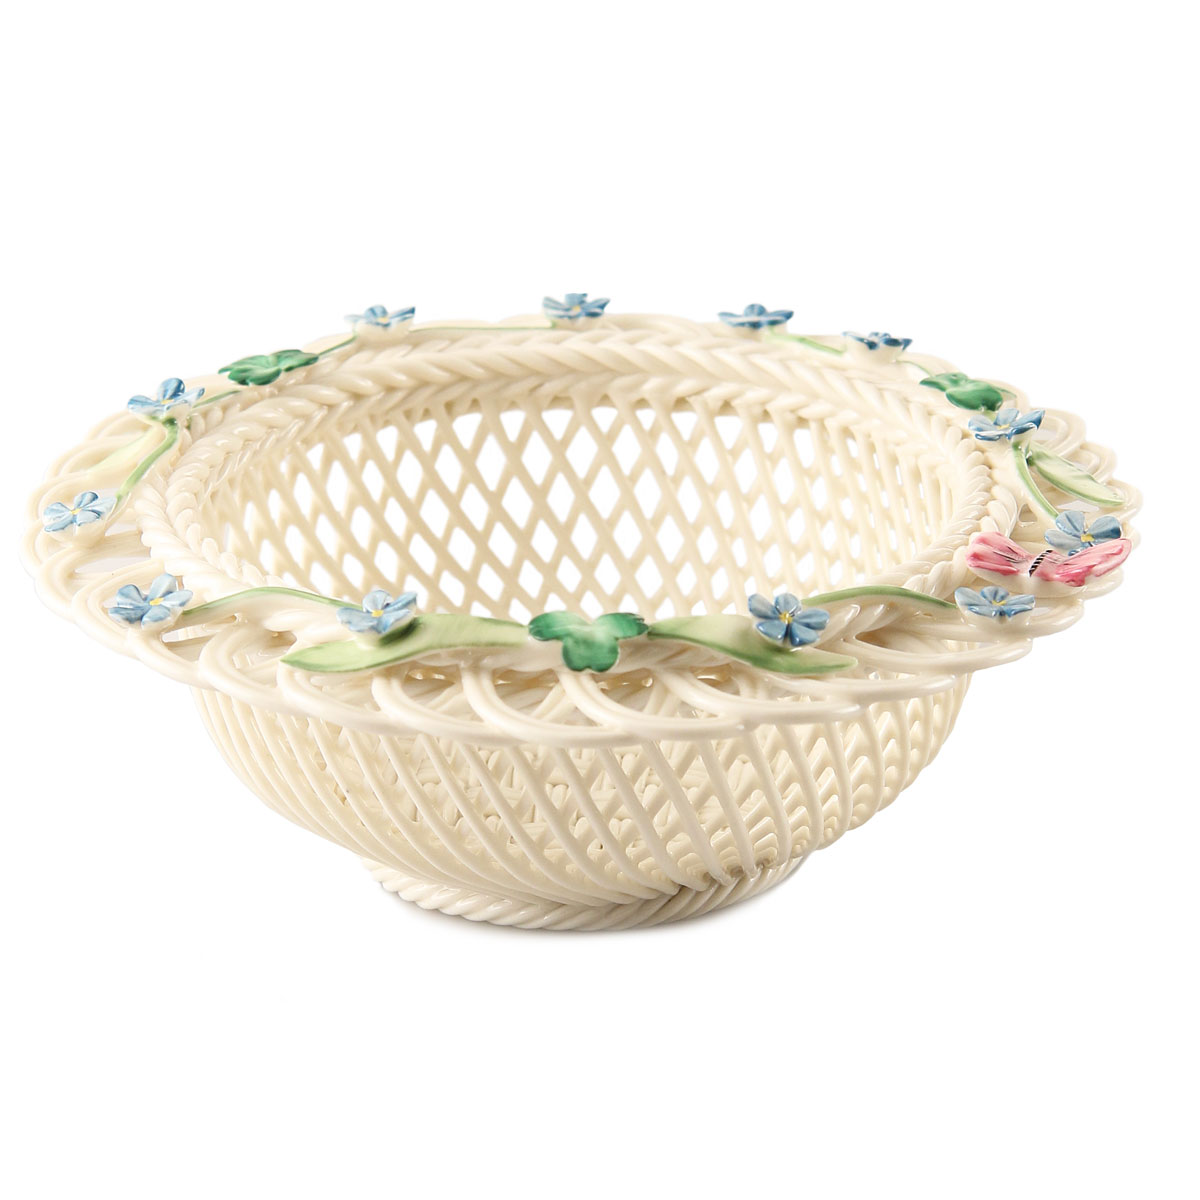 Belleek China Forget Me Not Basket, Limited Edition